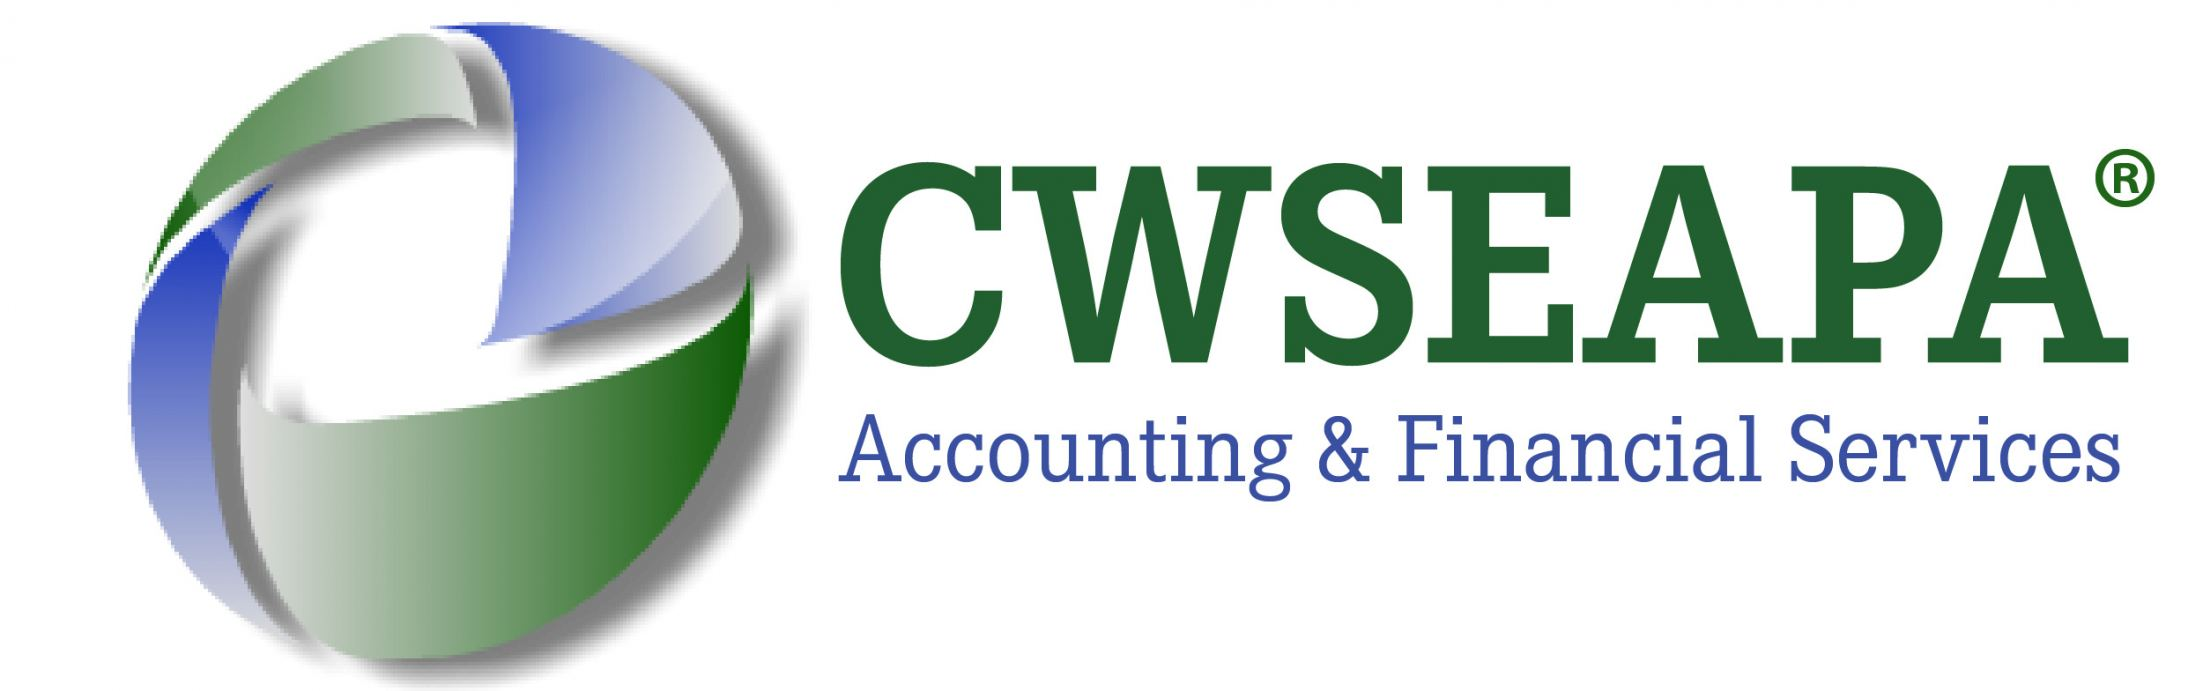 CWSEAPA® - Accounting & Financial Services Logo